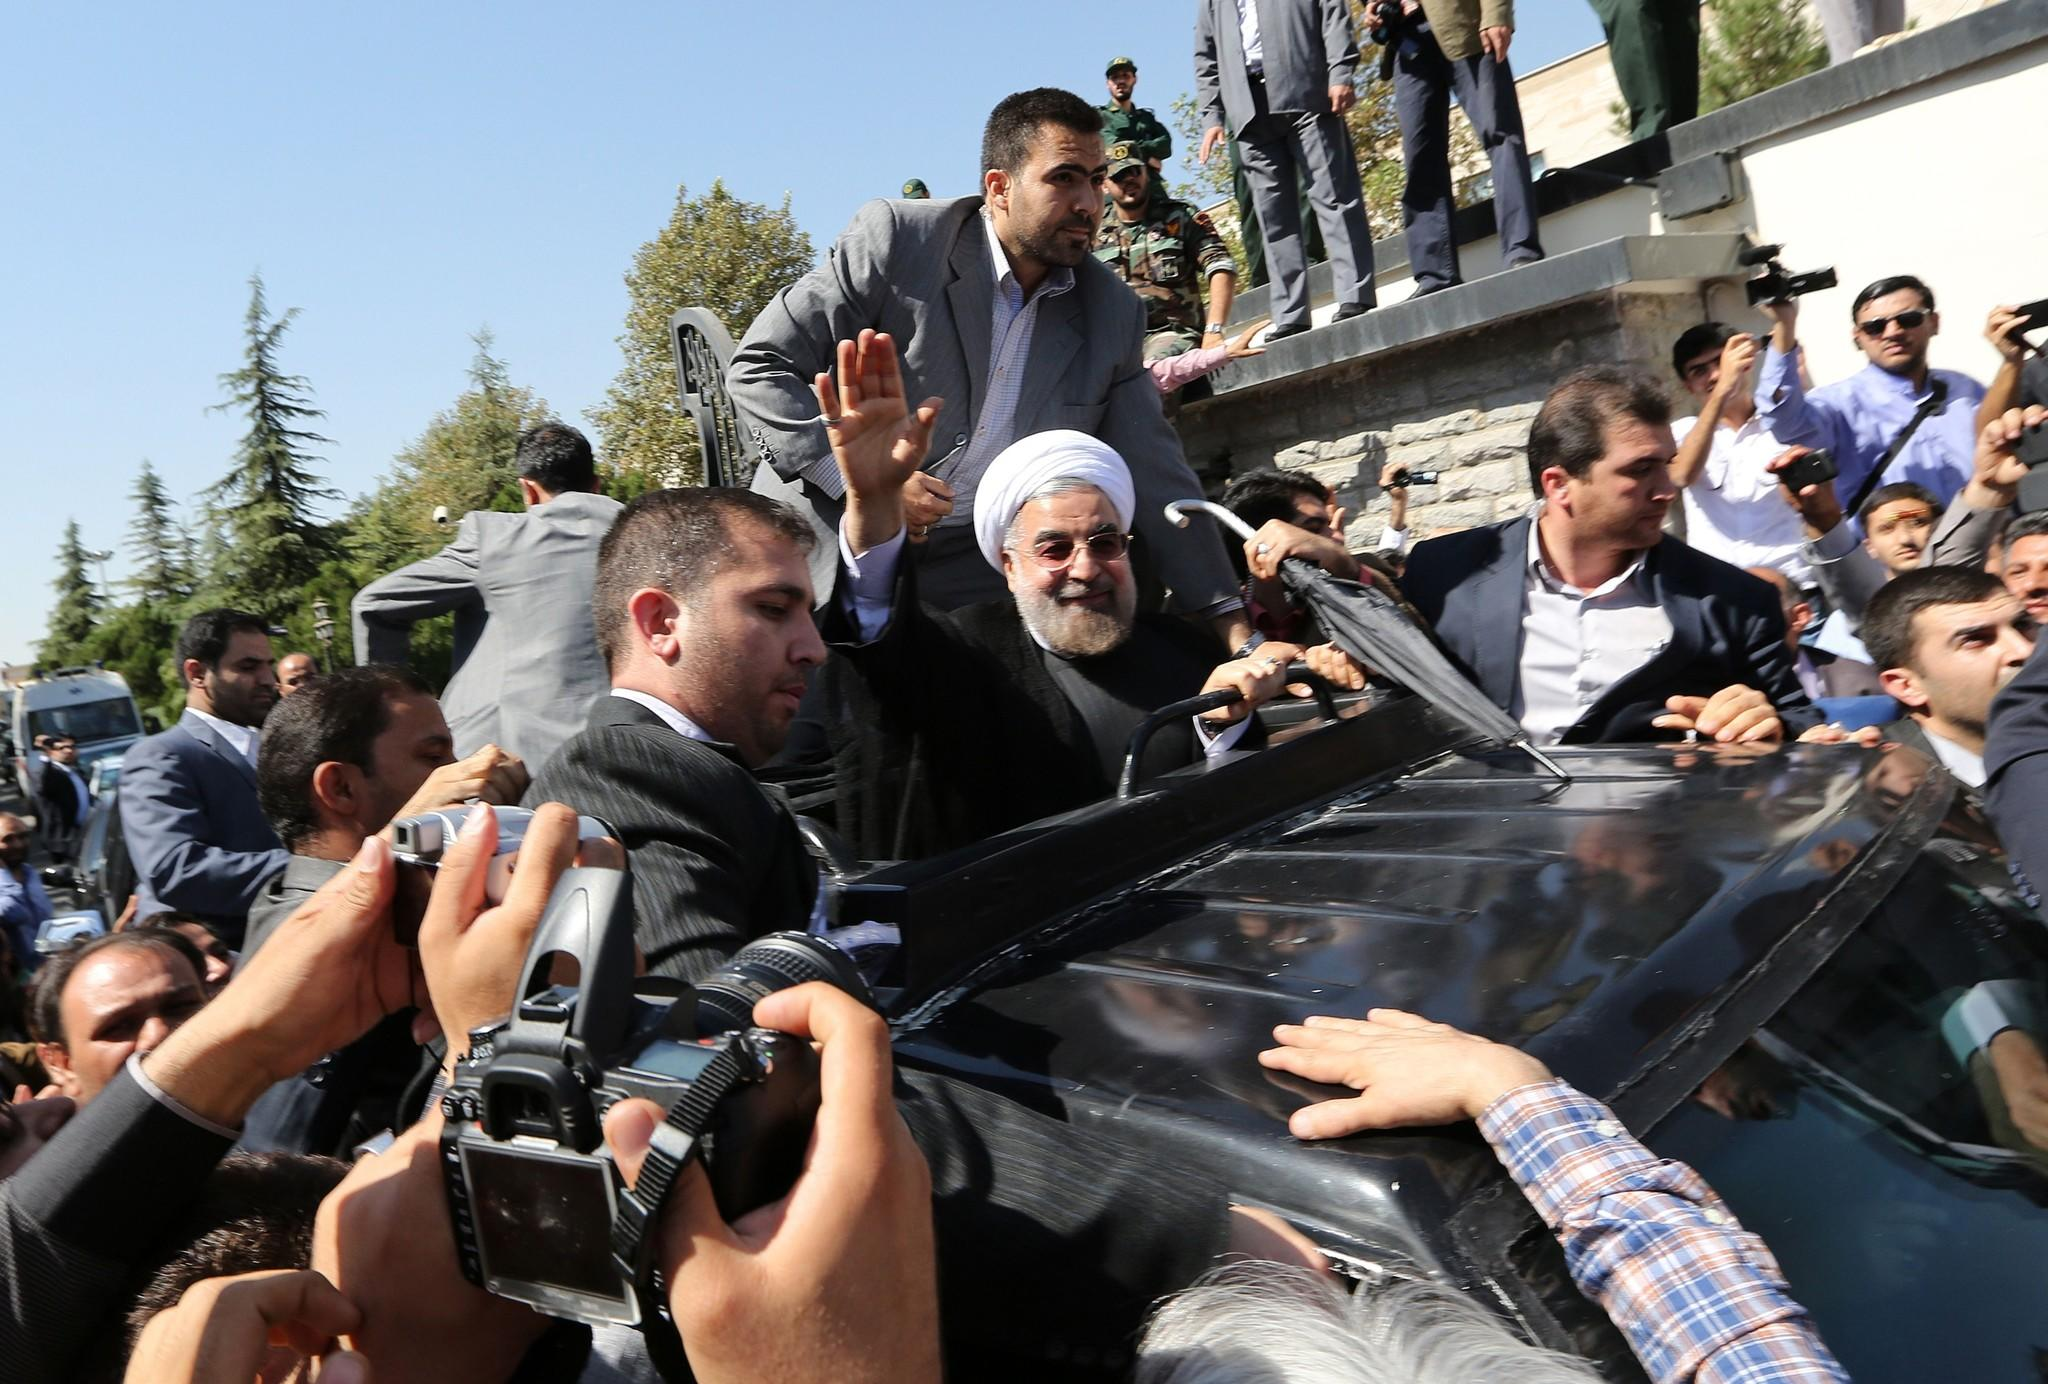 Iranian president Hassan Rouhani waves to journalists and supporters upon his return to Tehran from New York in September.